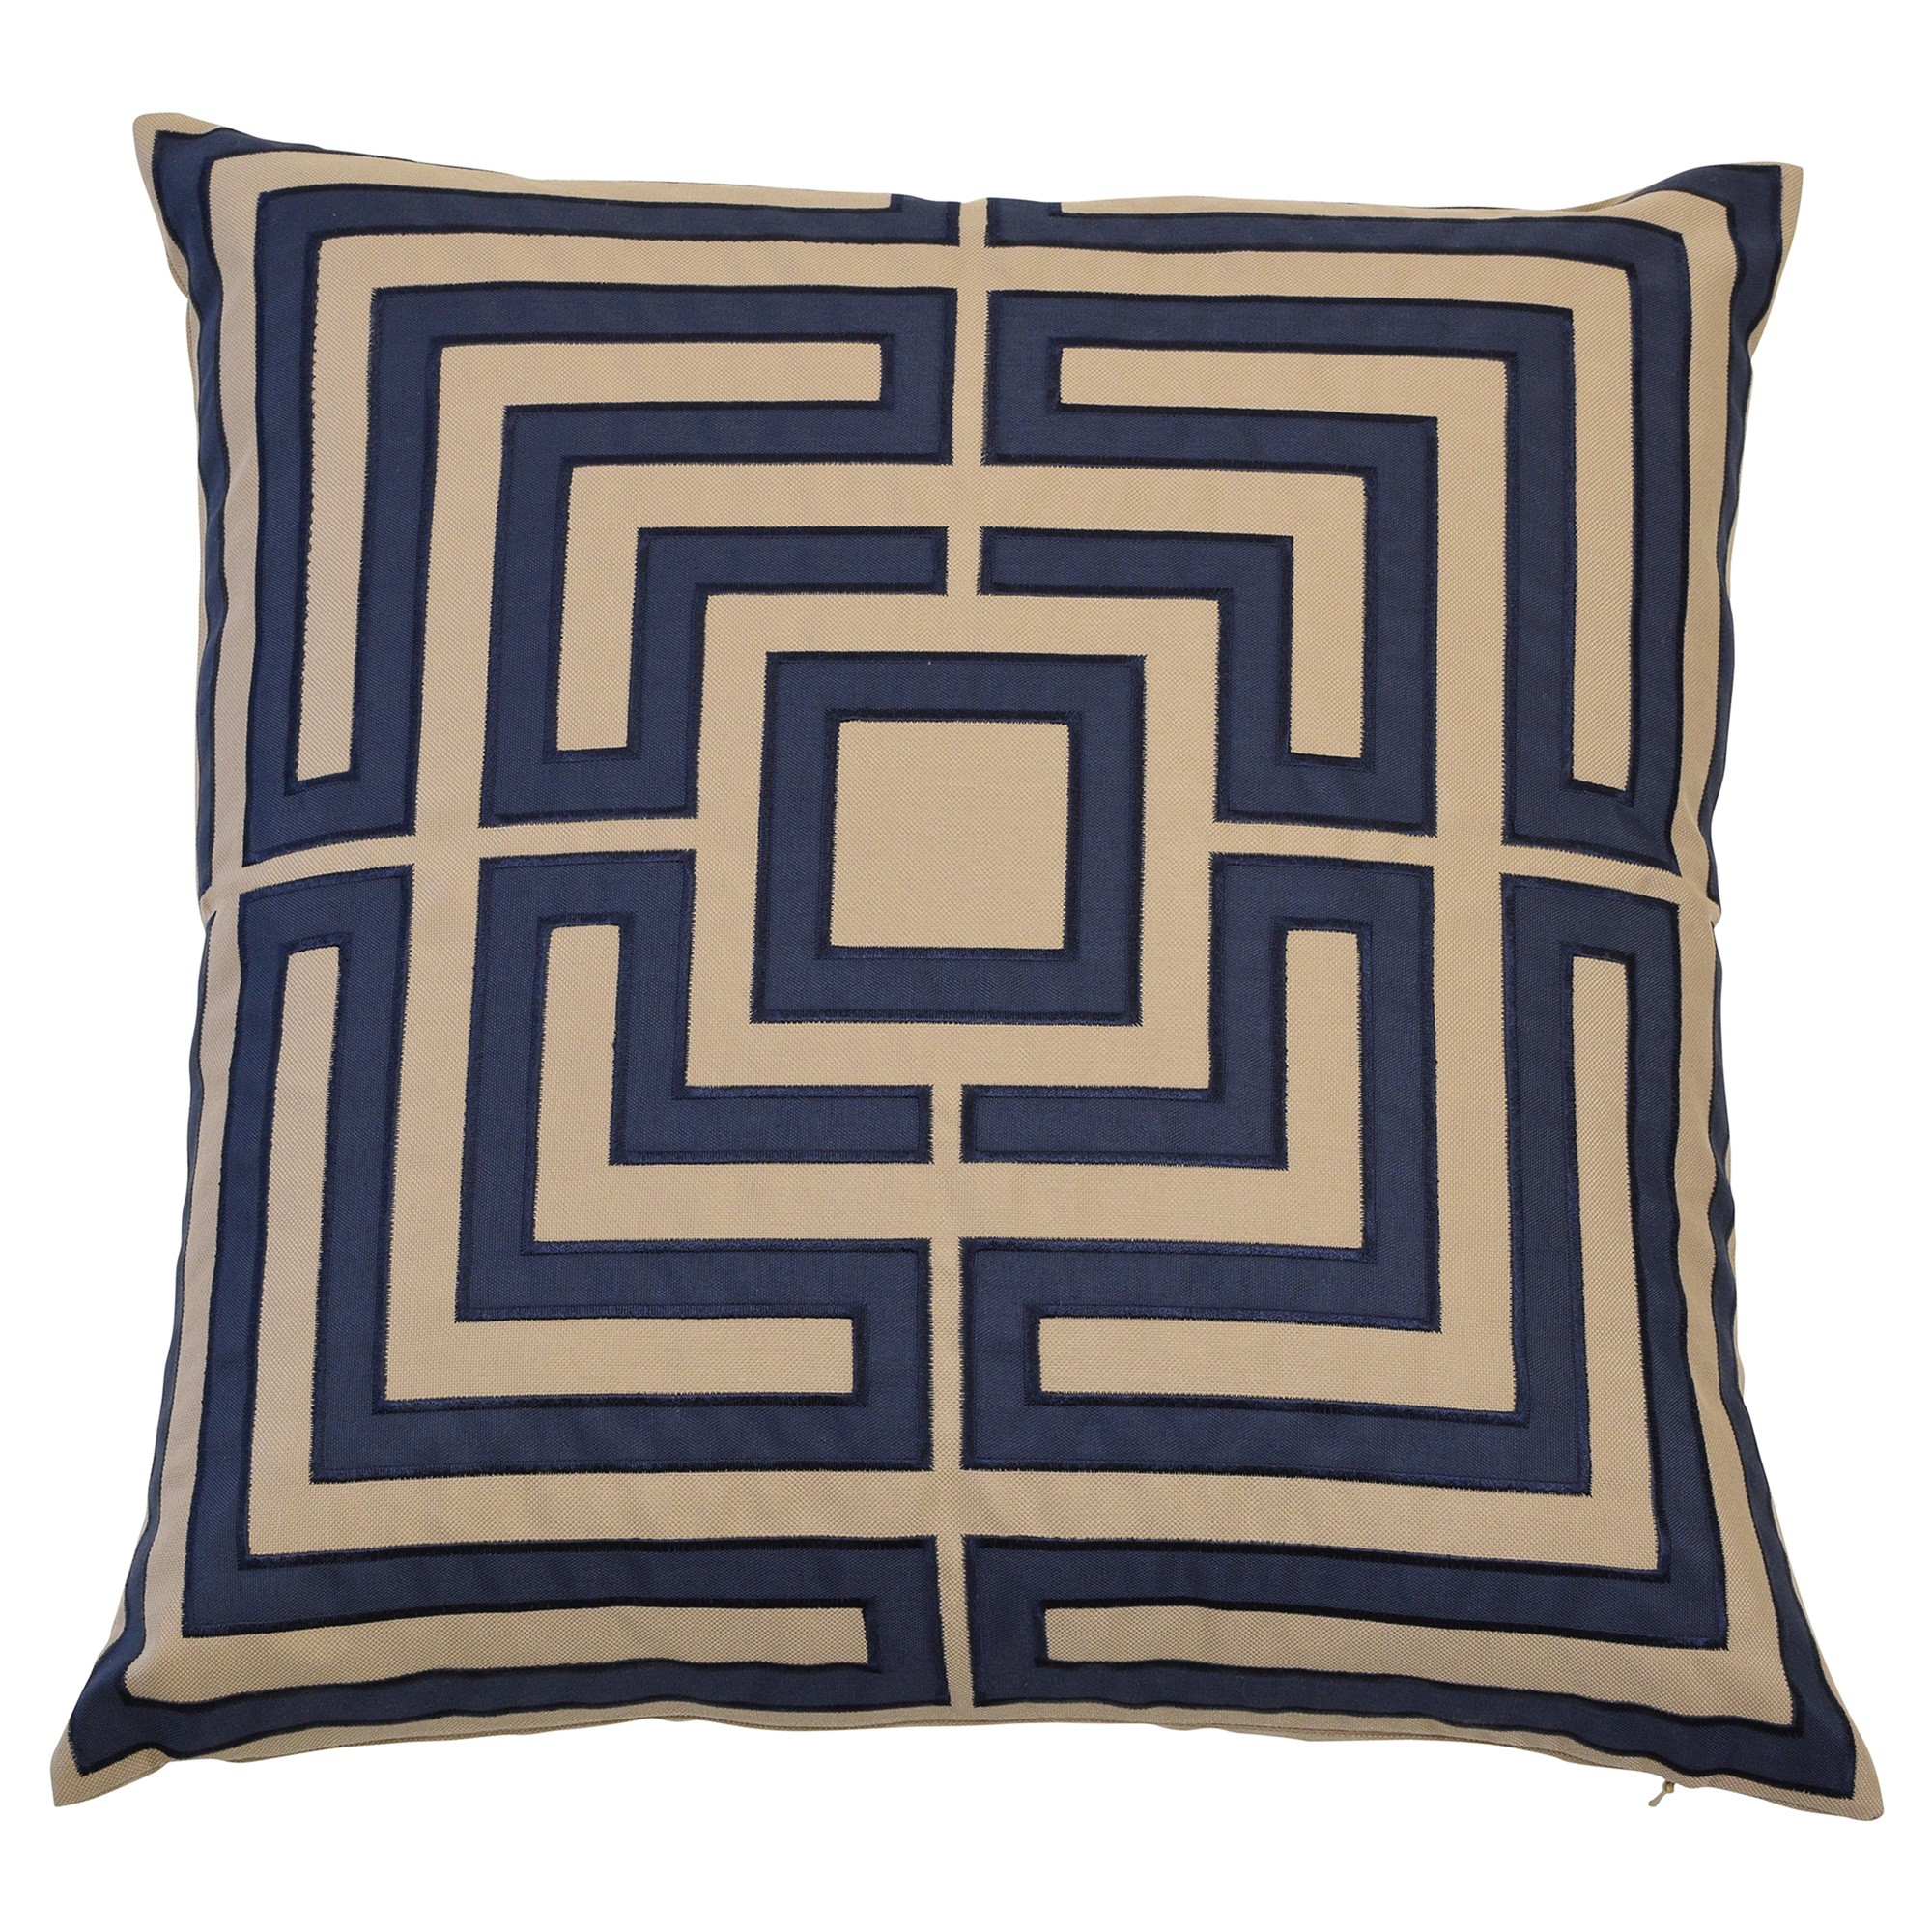 Acapulco Fabric Indoor / Outdoor Scatter Cushion Cover, Navy / Khaki